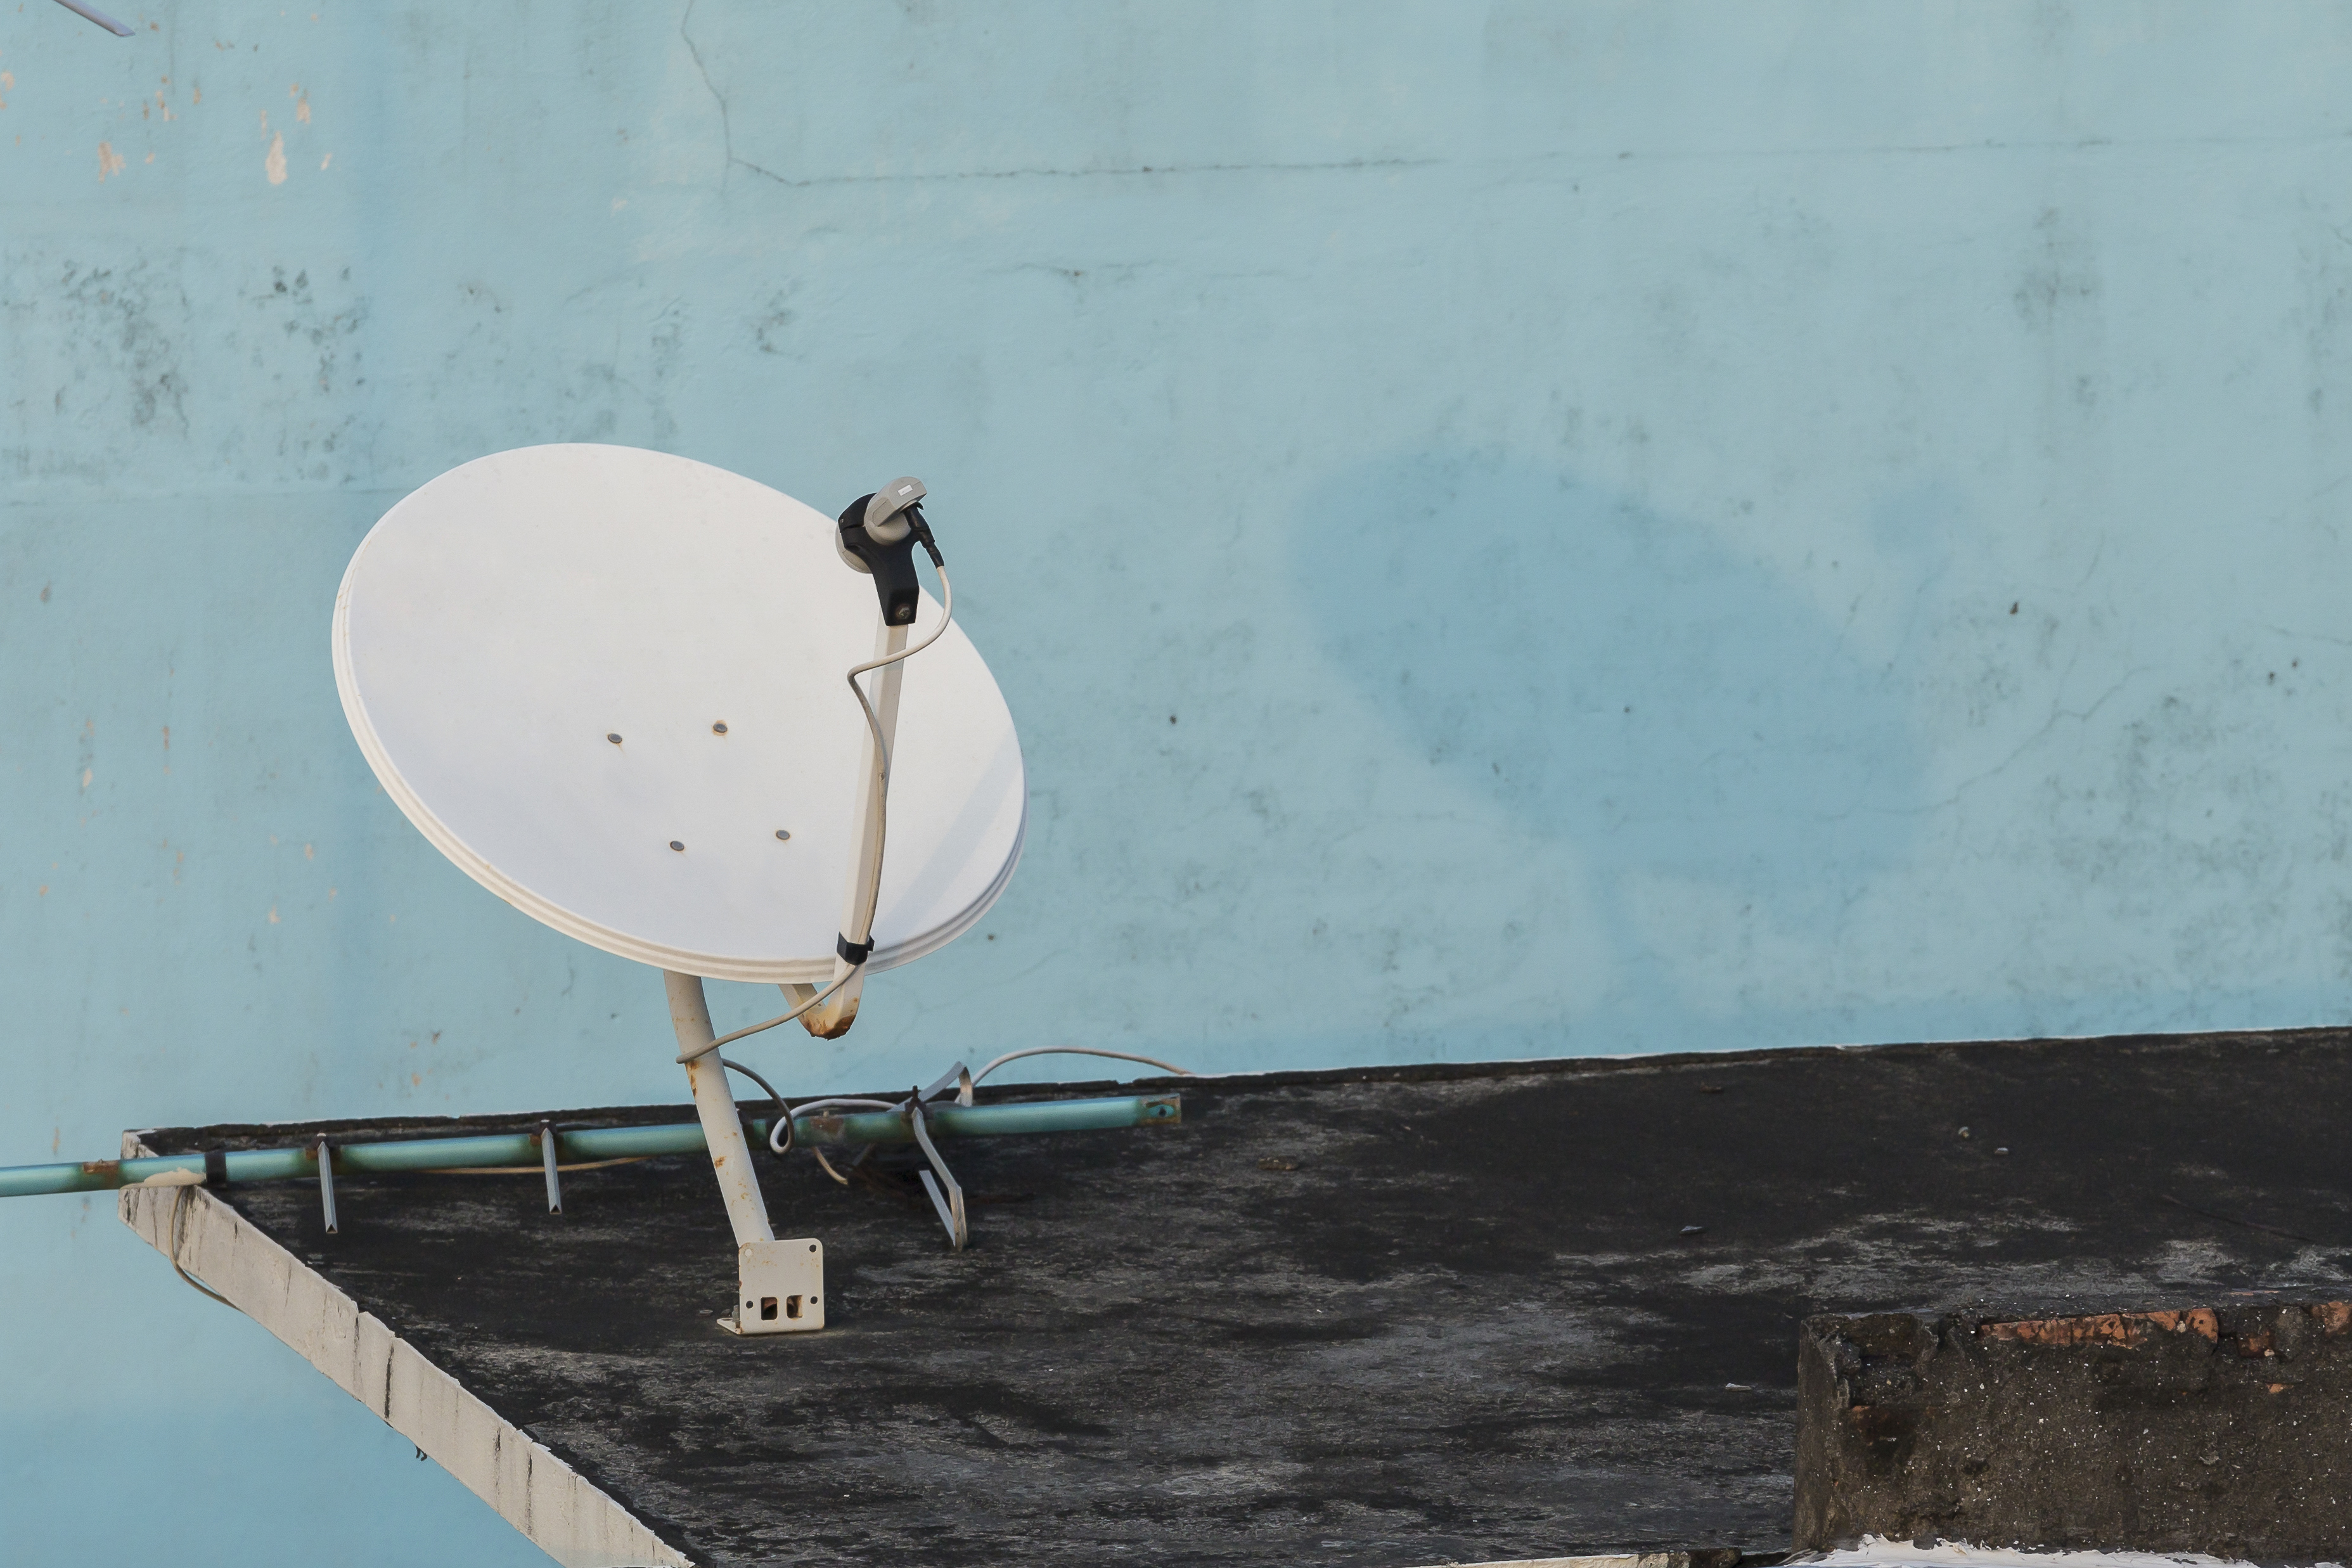 How to Align a Dish Network Satellite Dish to 110 and 119